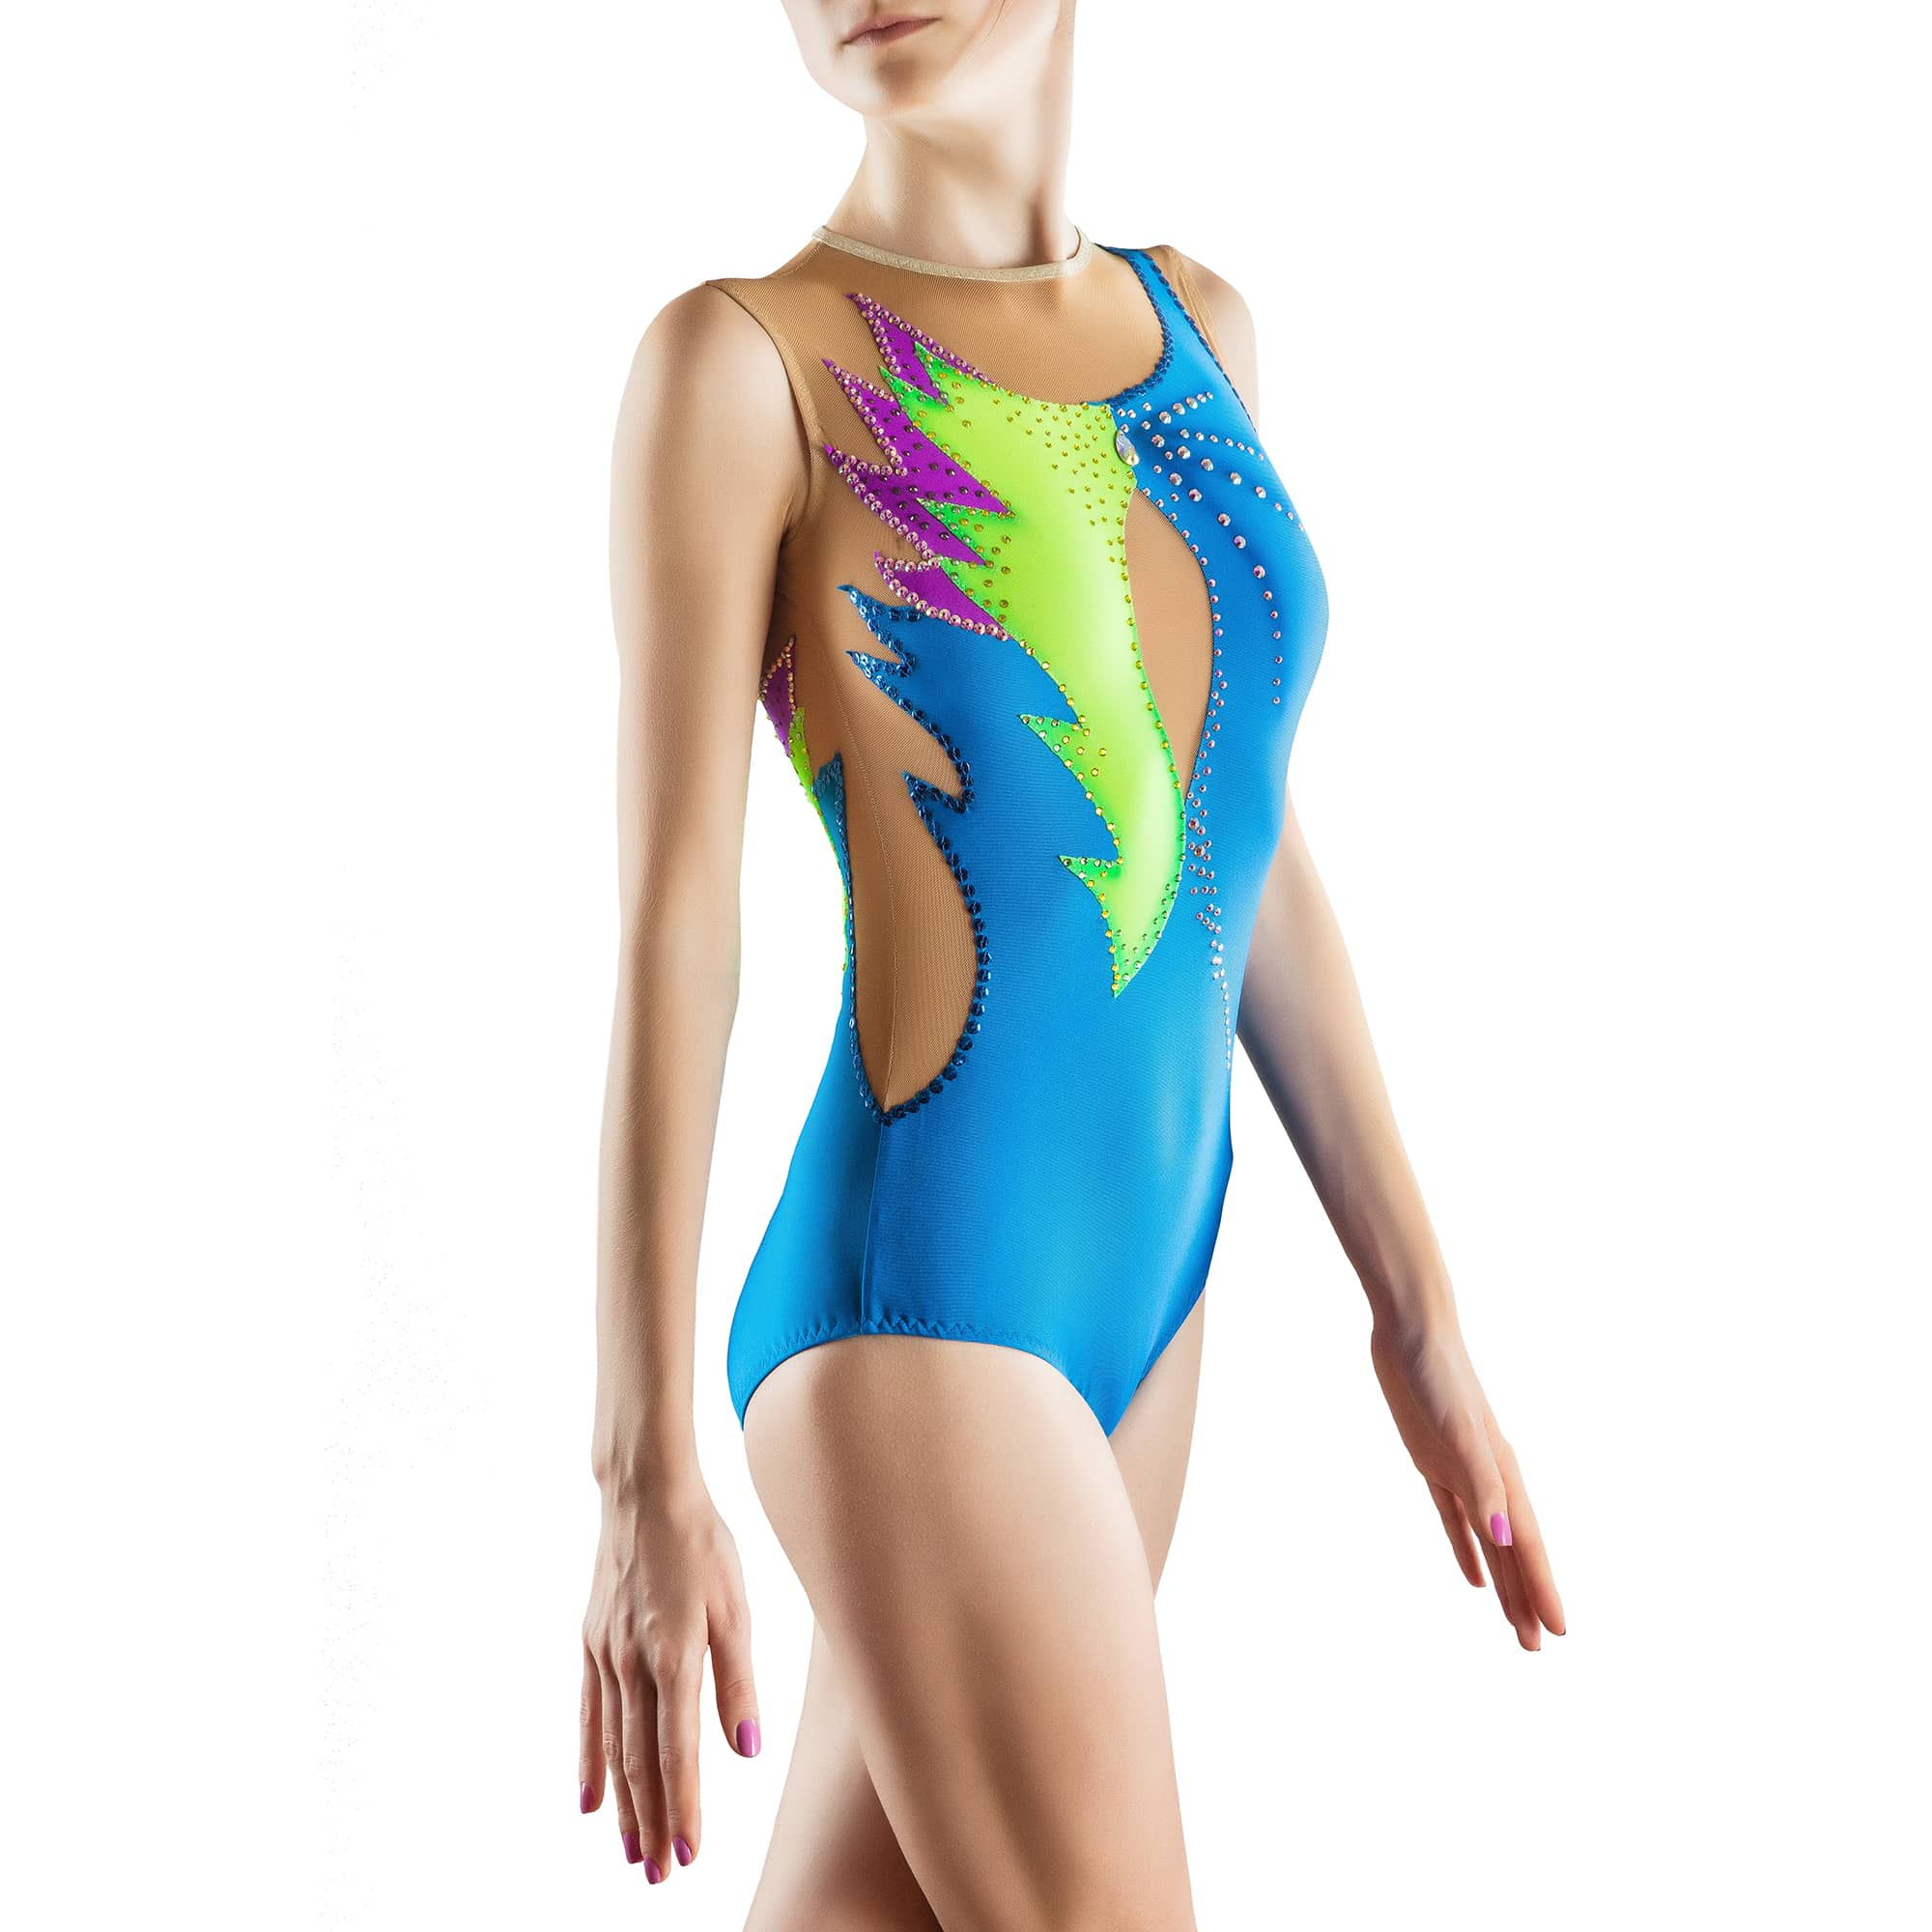 Three quarters view of skirtless, sleeveless & collarless acrobatic gymnastics costumee № 173 made in blue, lemon, violet colours